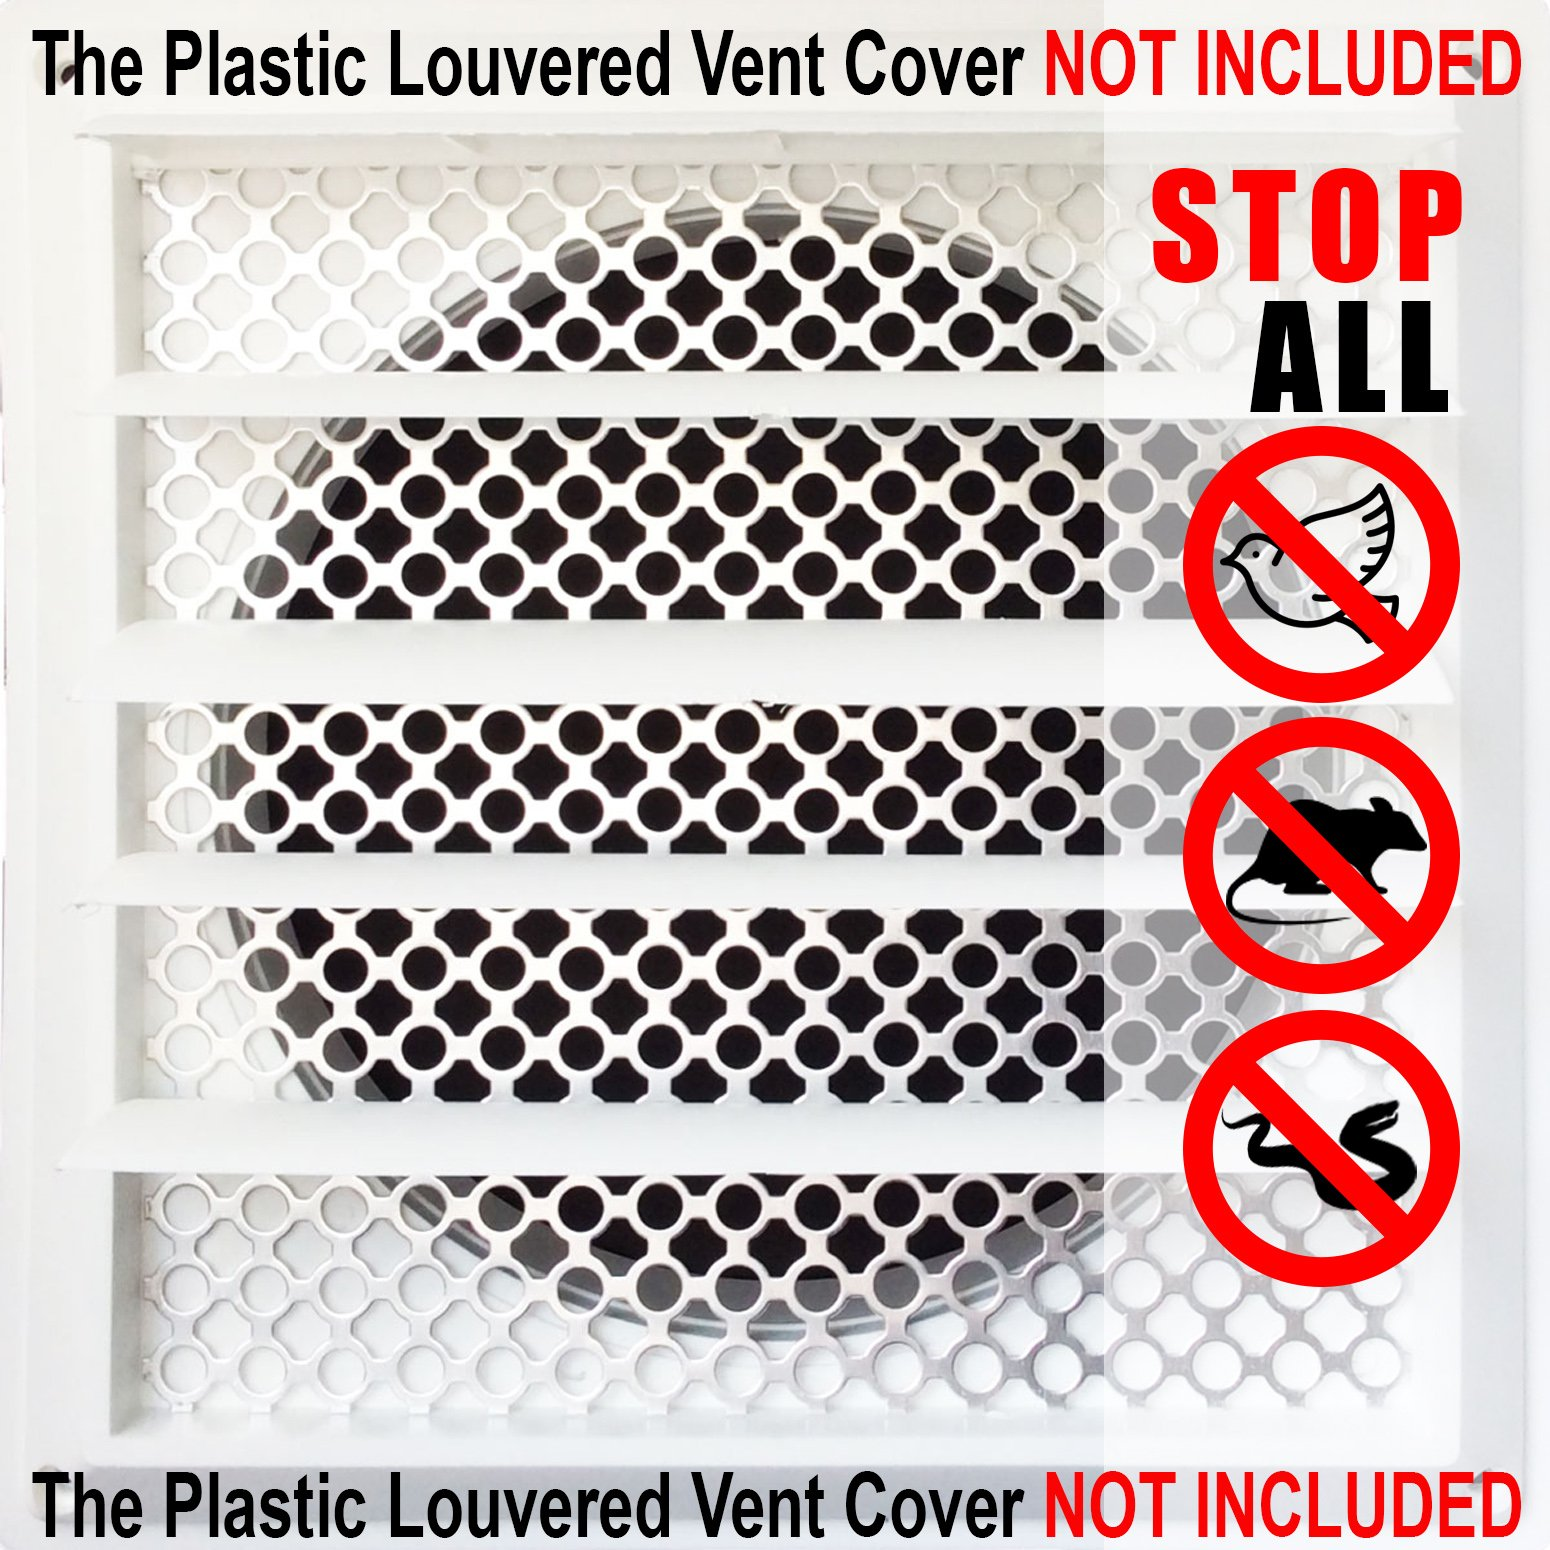 New Aroma Trees Dryer Vent Bird Stop - Dryer Vent Grill - Pest Guard - Stops Birds Nesting In Dryer Vents and Bathroom Exhaust Vents Pipe, Customizable 3'' - 8'' Louver Vent Hood Cover Guard by Aroma Trees (Image #3)